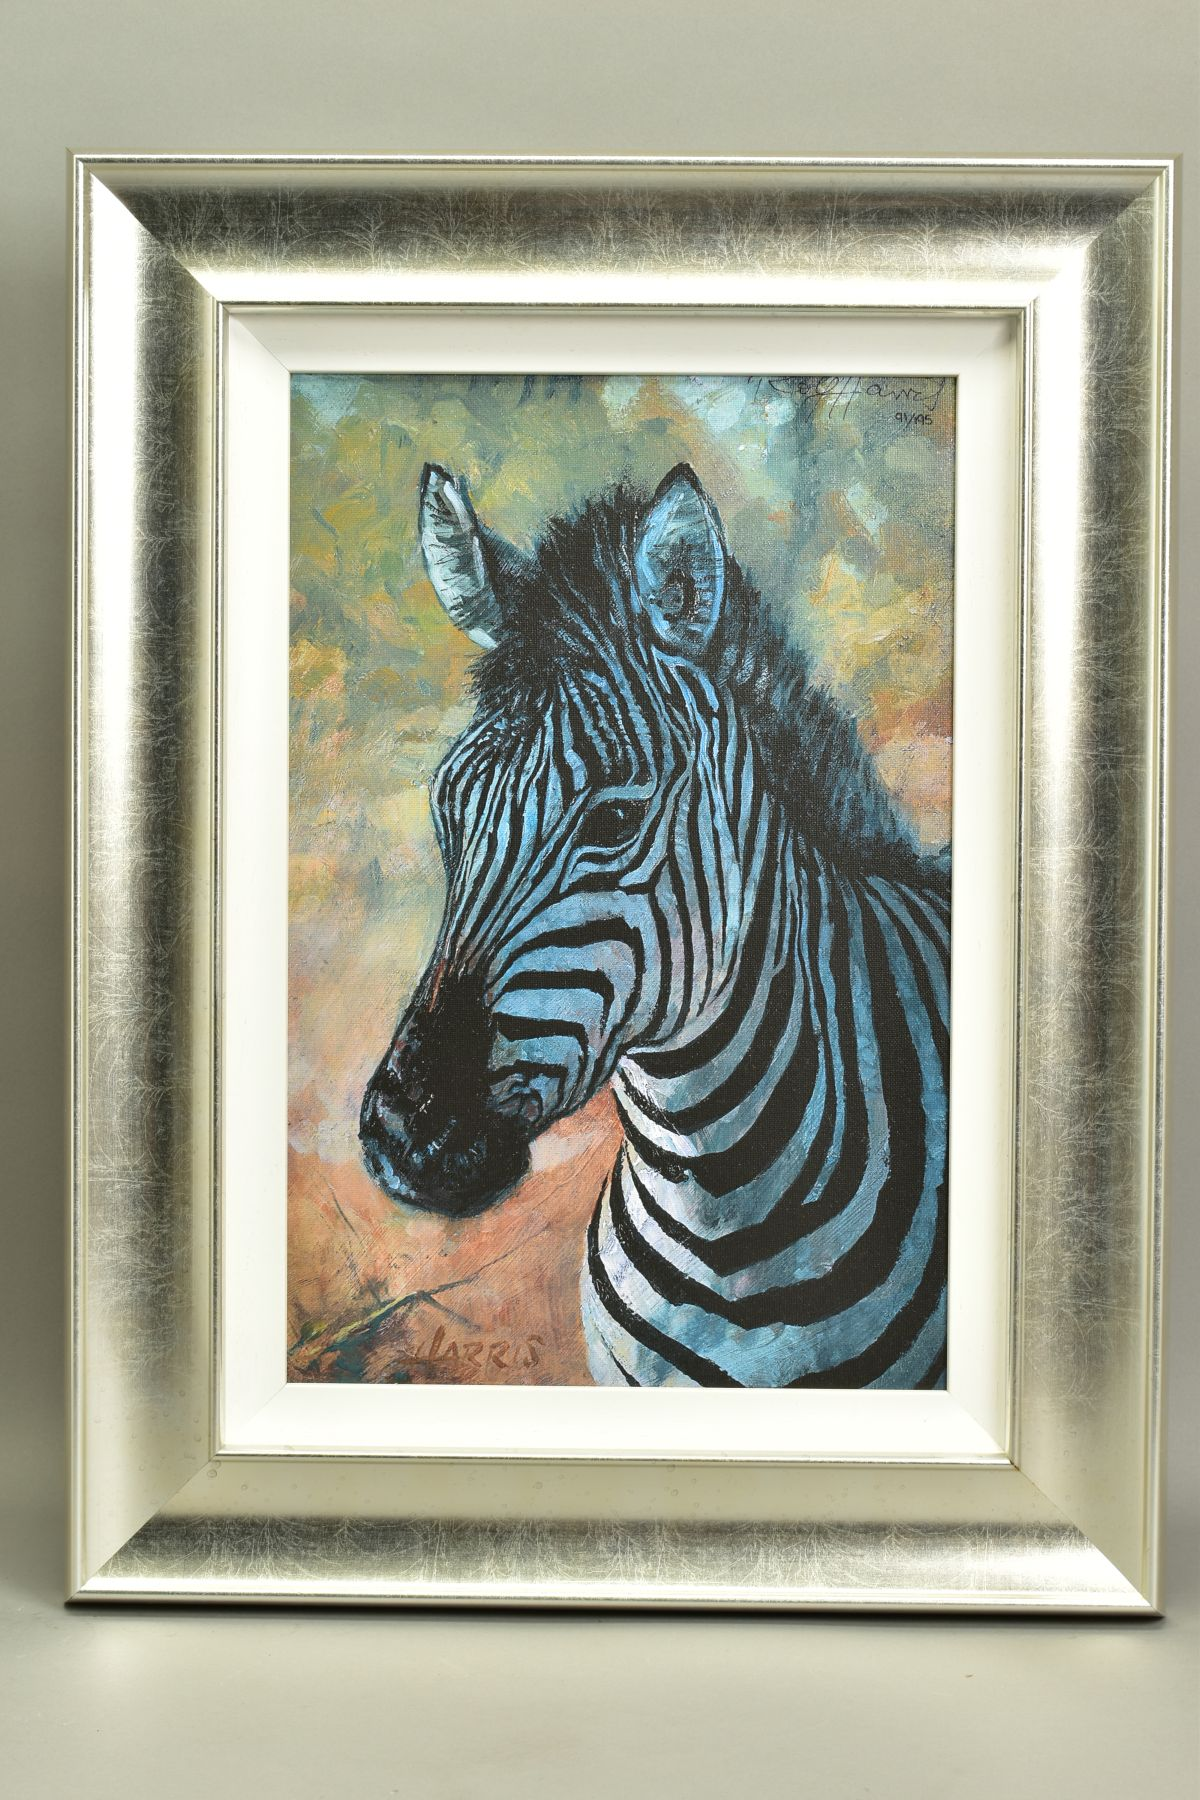 ROLF HARRIS (AUSTRALIAN 1930), 'Young Zebra', a Limited Edition print, 91/195, signed top right with